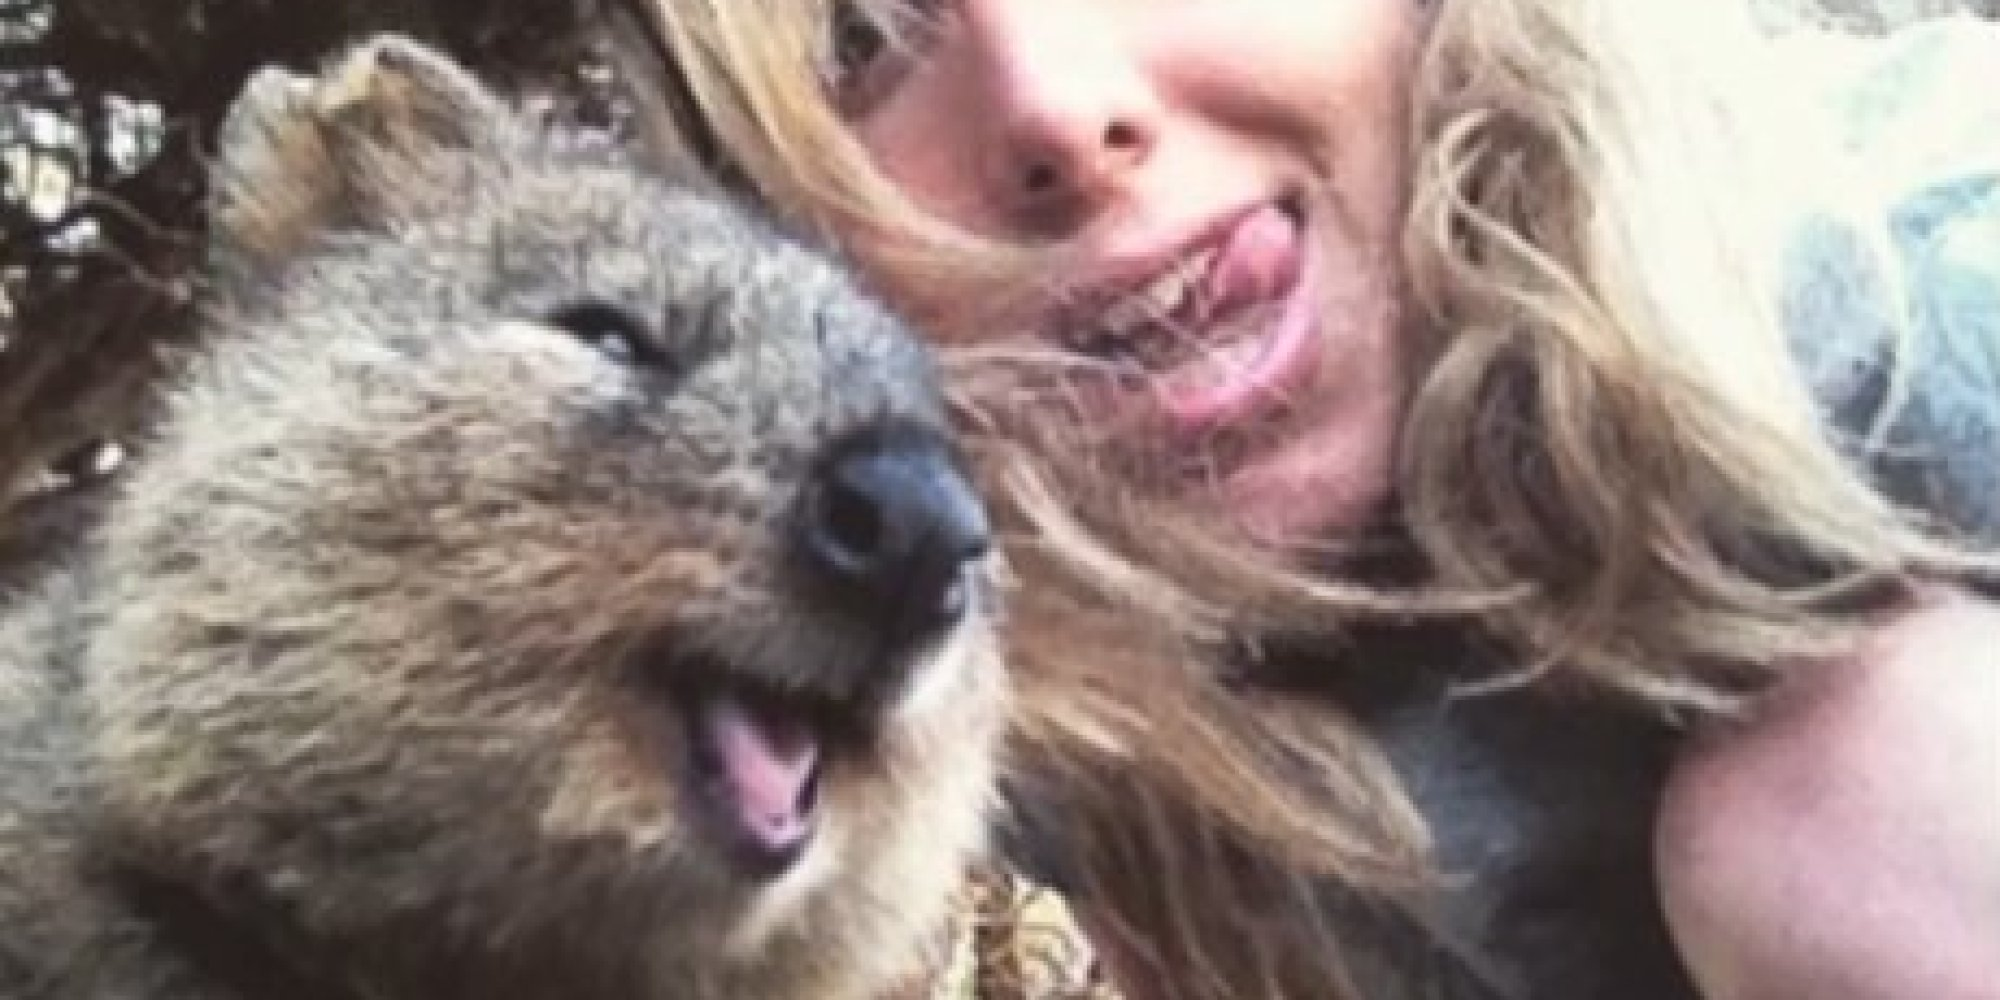 Cute Baby Girl Wallpaper For Desktop Quokka Selfies Are The Cutest Selfies